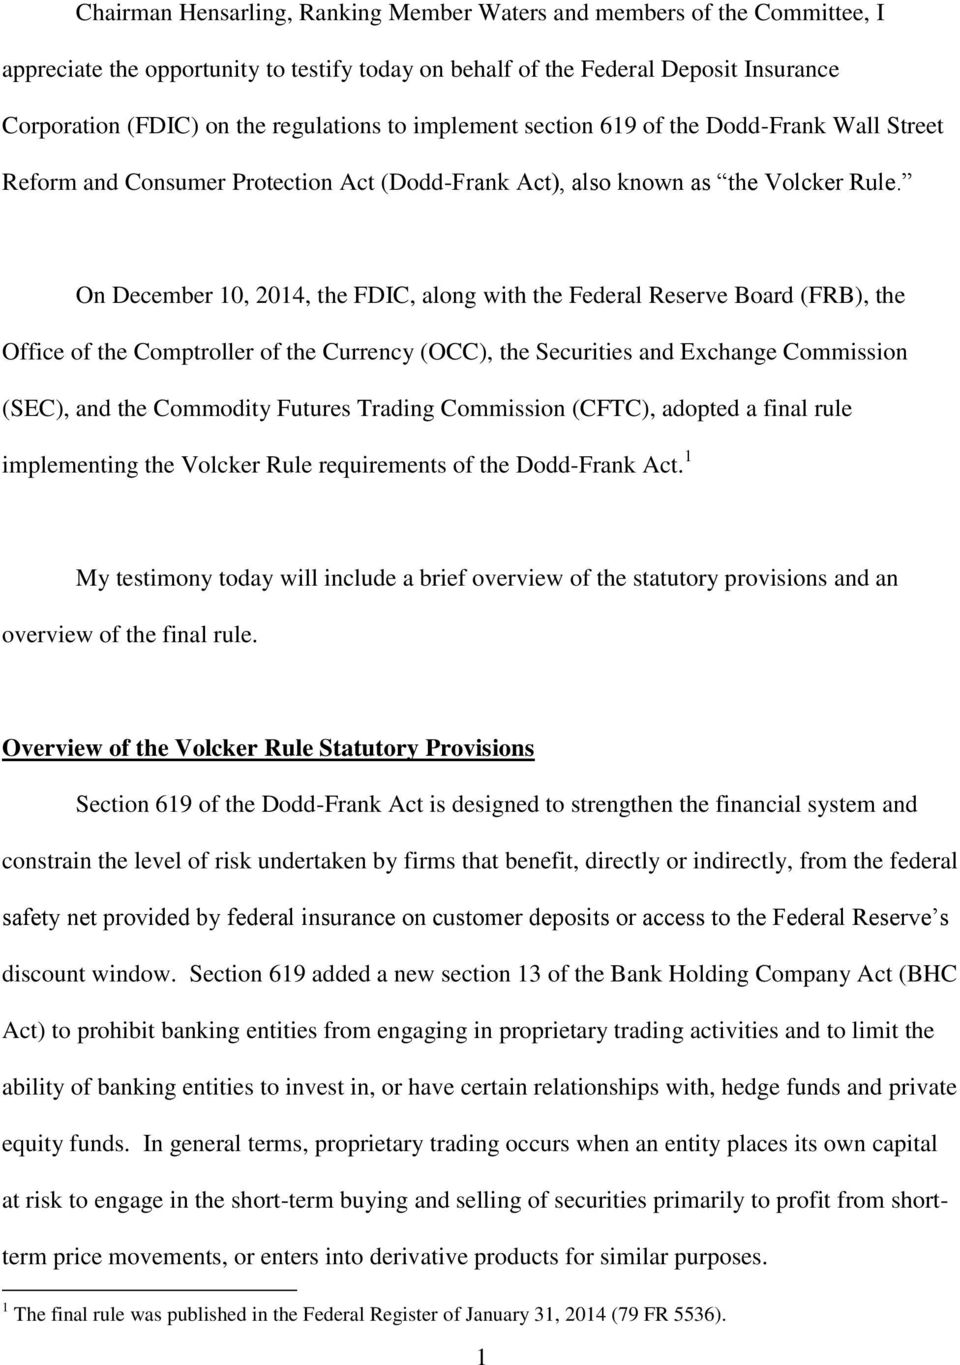 On December 10, 2014, the FDIC, along with the Federal Reserve Board (FRB), the Office of the Comptroller of the Currency (OCC), the Securities and Exchange Commission (SEC), and the Commodity